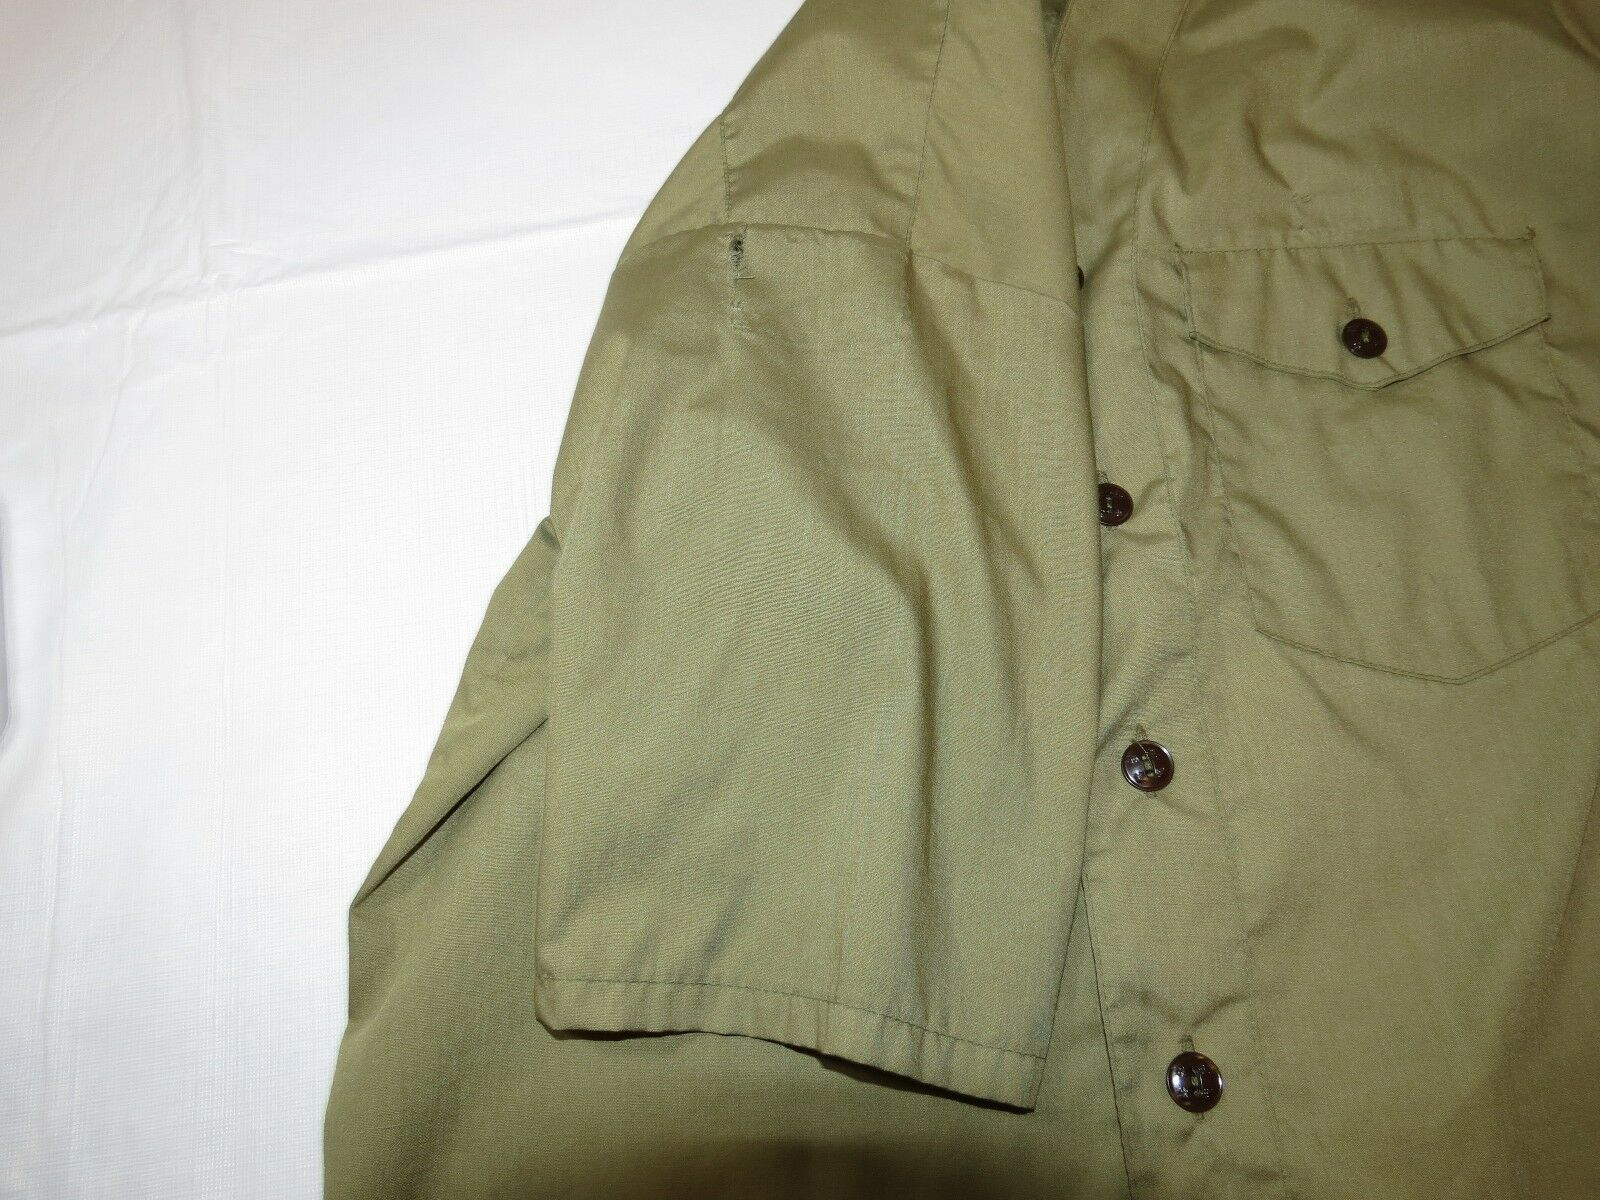 Boy Scouts of America Official Shirt boys youth short sleeve button up shirt image 7